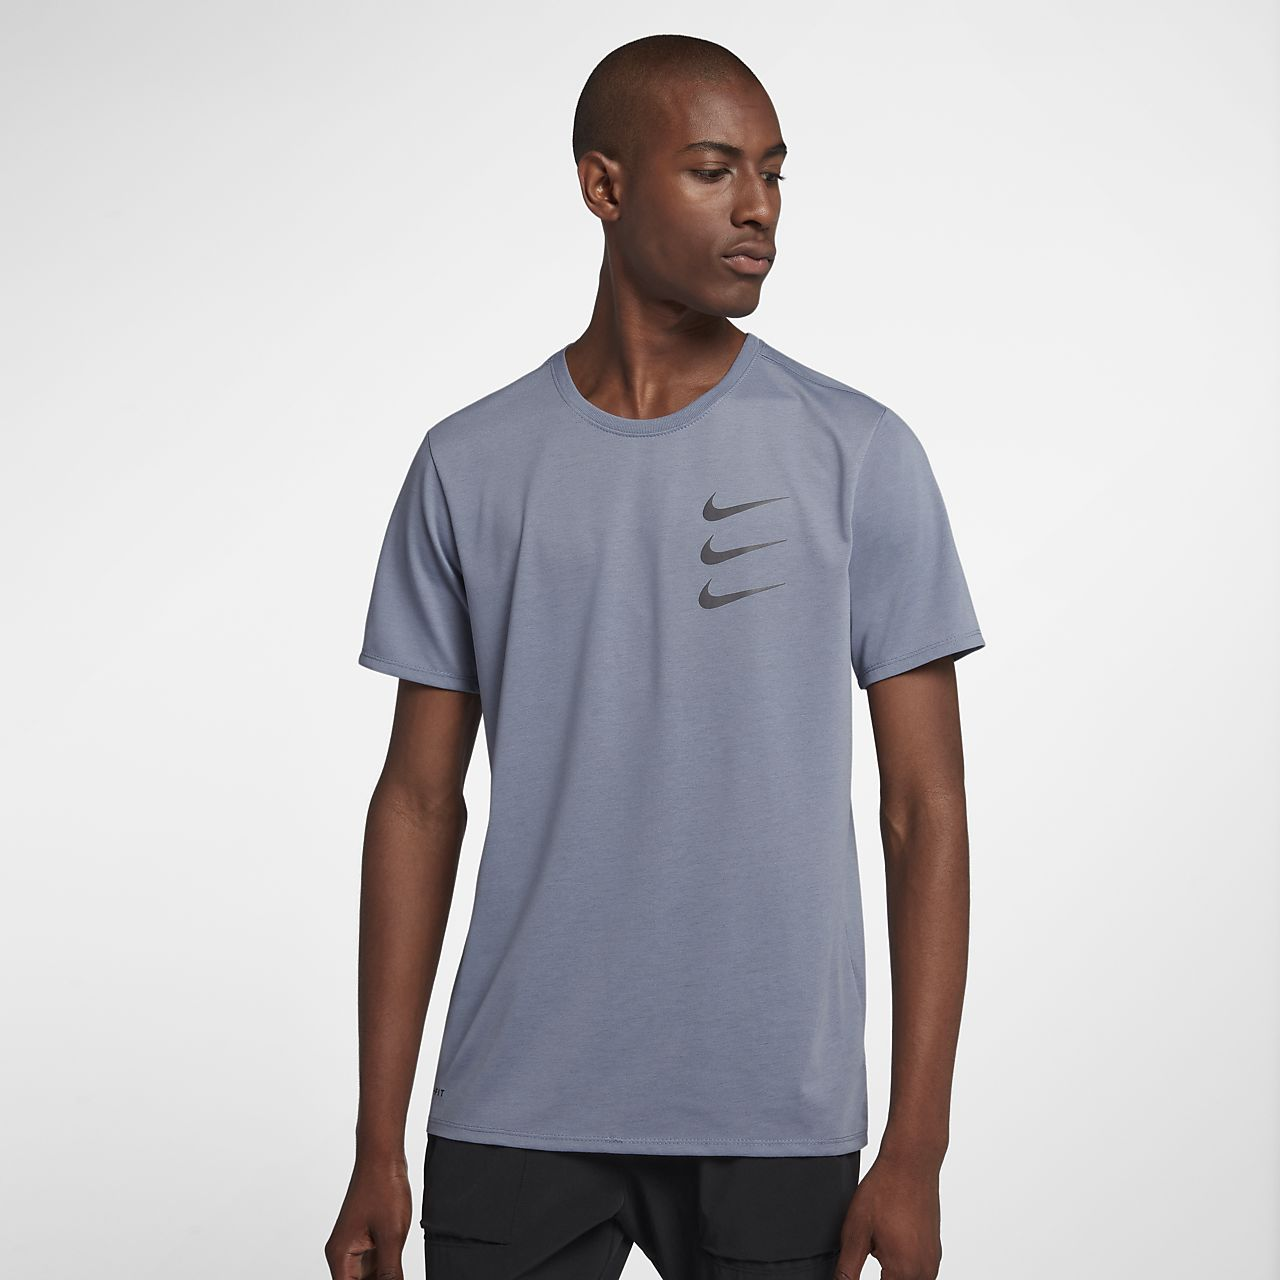 excellent quality 50% price authorized site Tee-shirt de running Nike Dri-FIT Run Division pour Homme